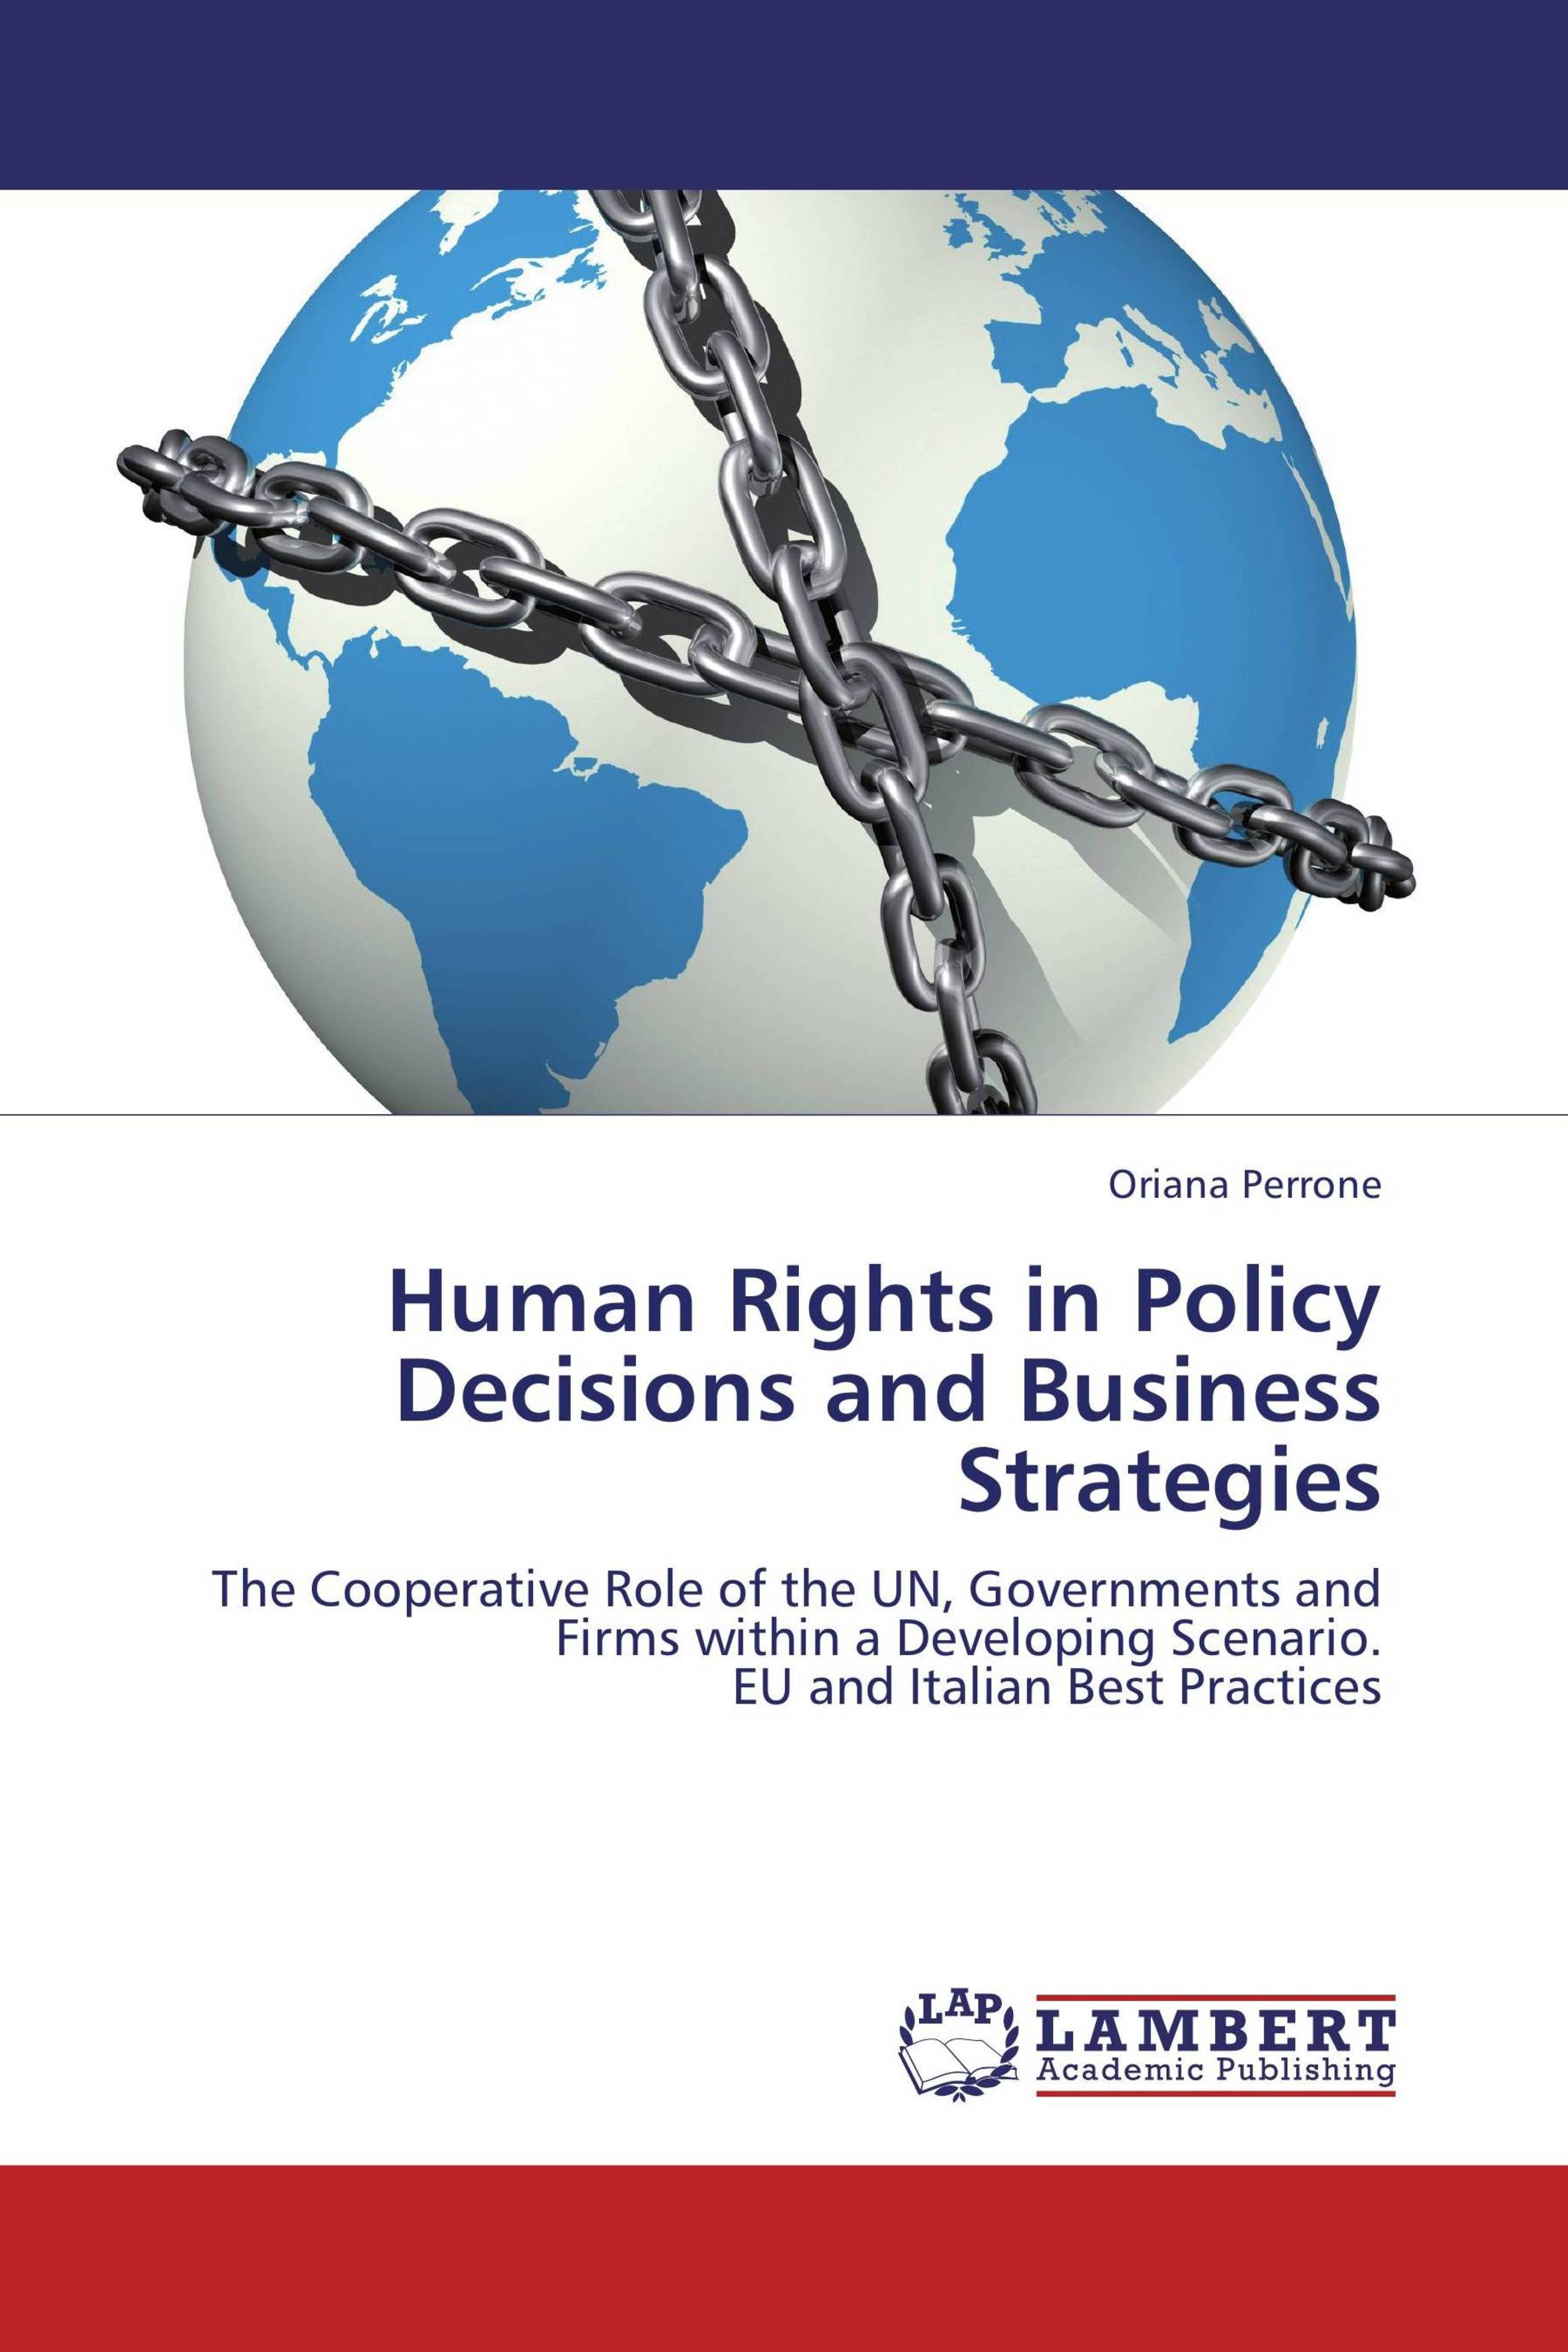 Human Rights in Policy Decisions and Business Strategies